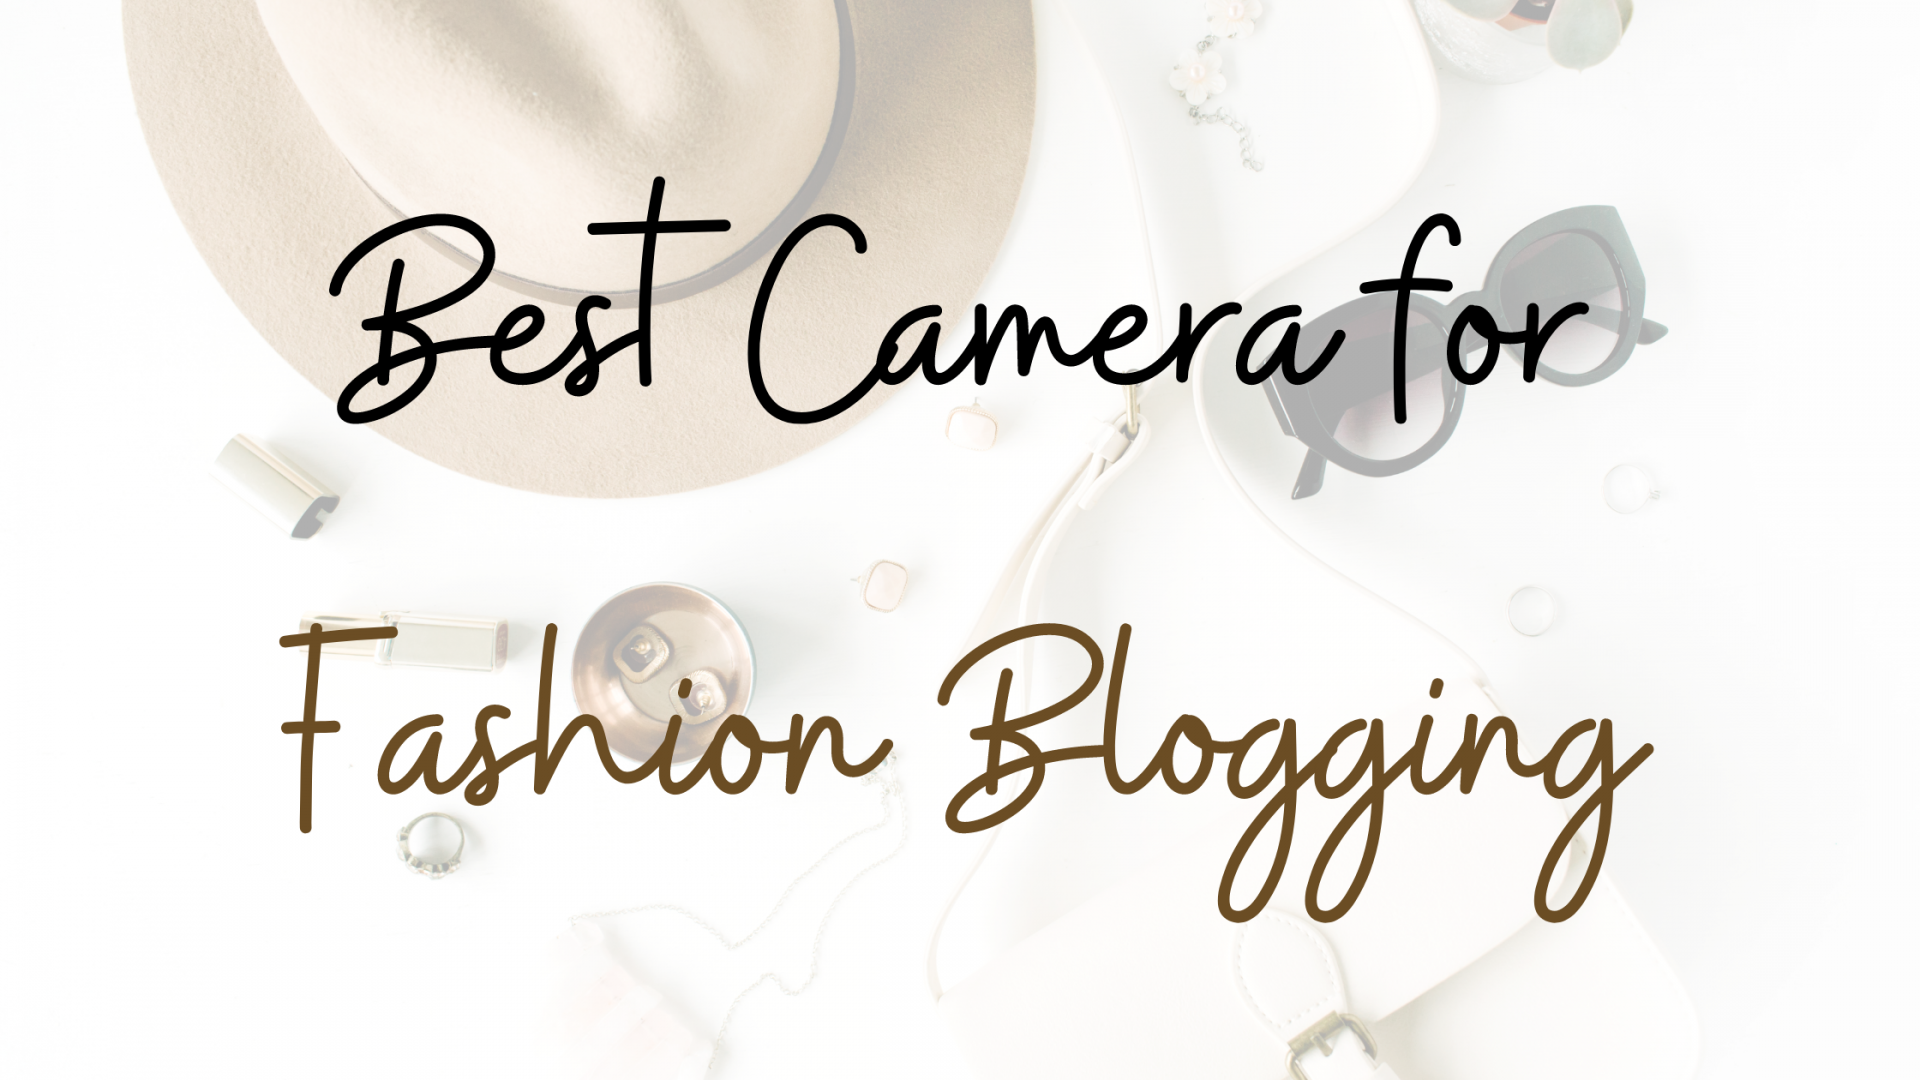 The Ultimate Guide to Buying the Best Camera for Fashion Blogging